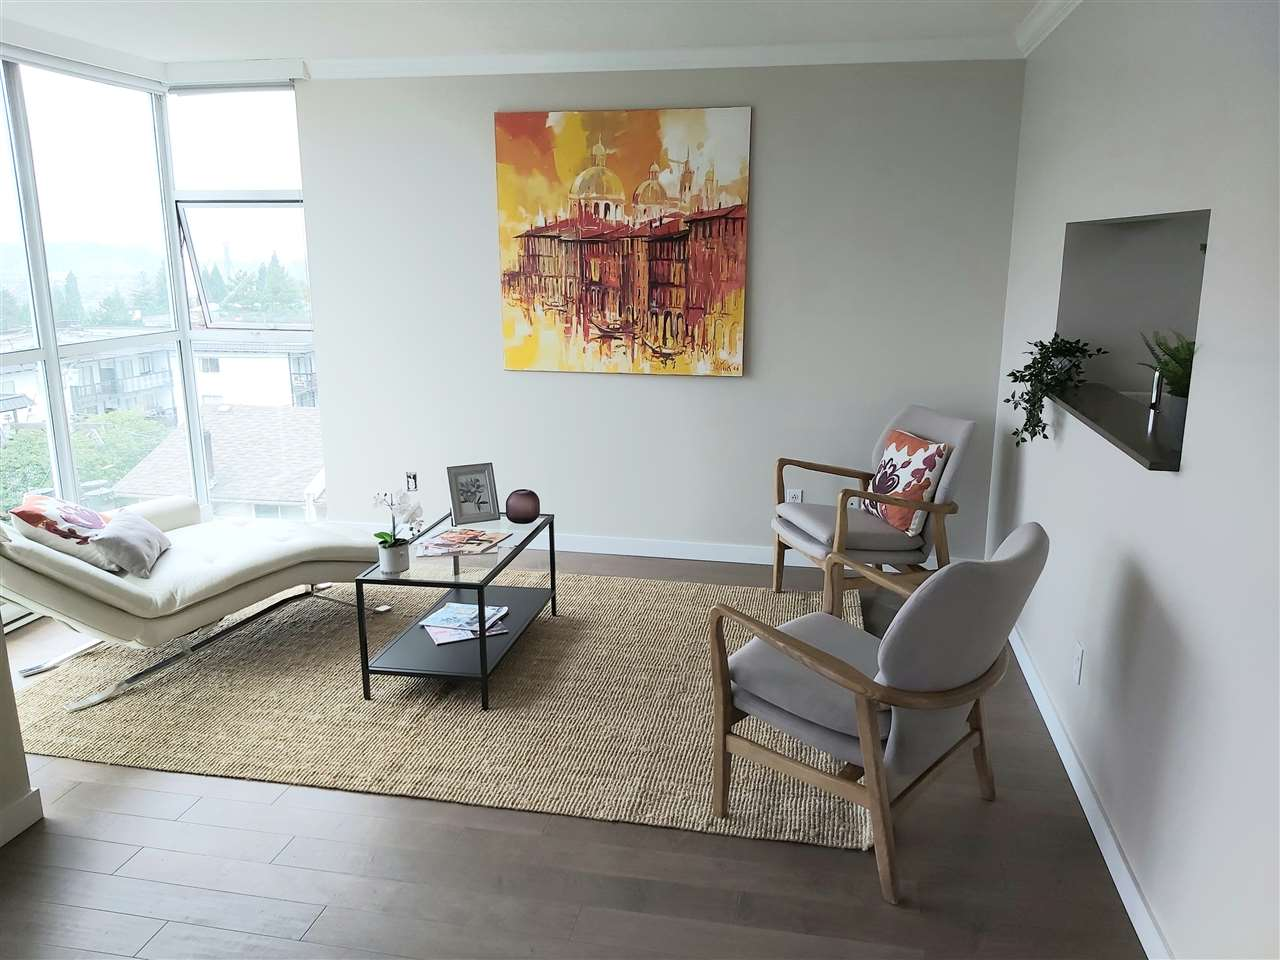 502 567 LONSDALE AVENUE - Lower Lonsdale Apartment/Condo for sale, 1 Bedroom (R2518852) - #8